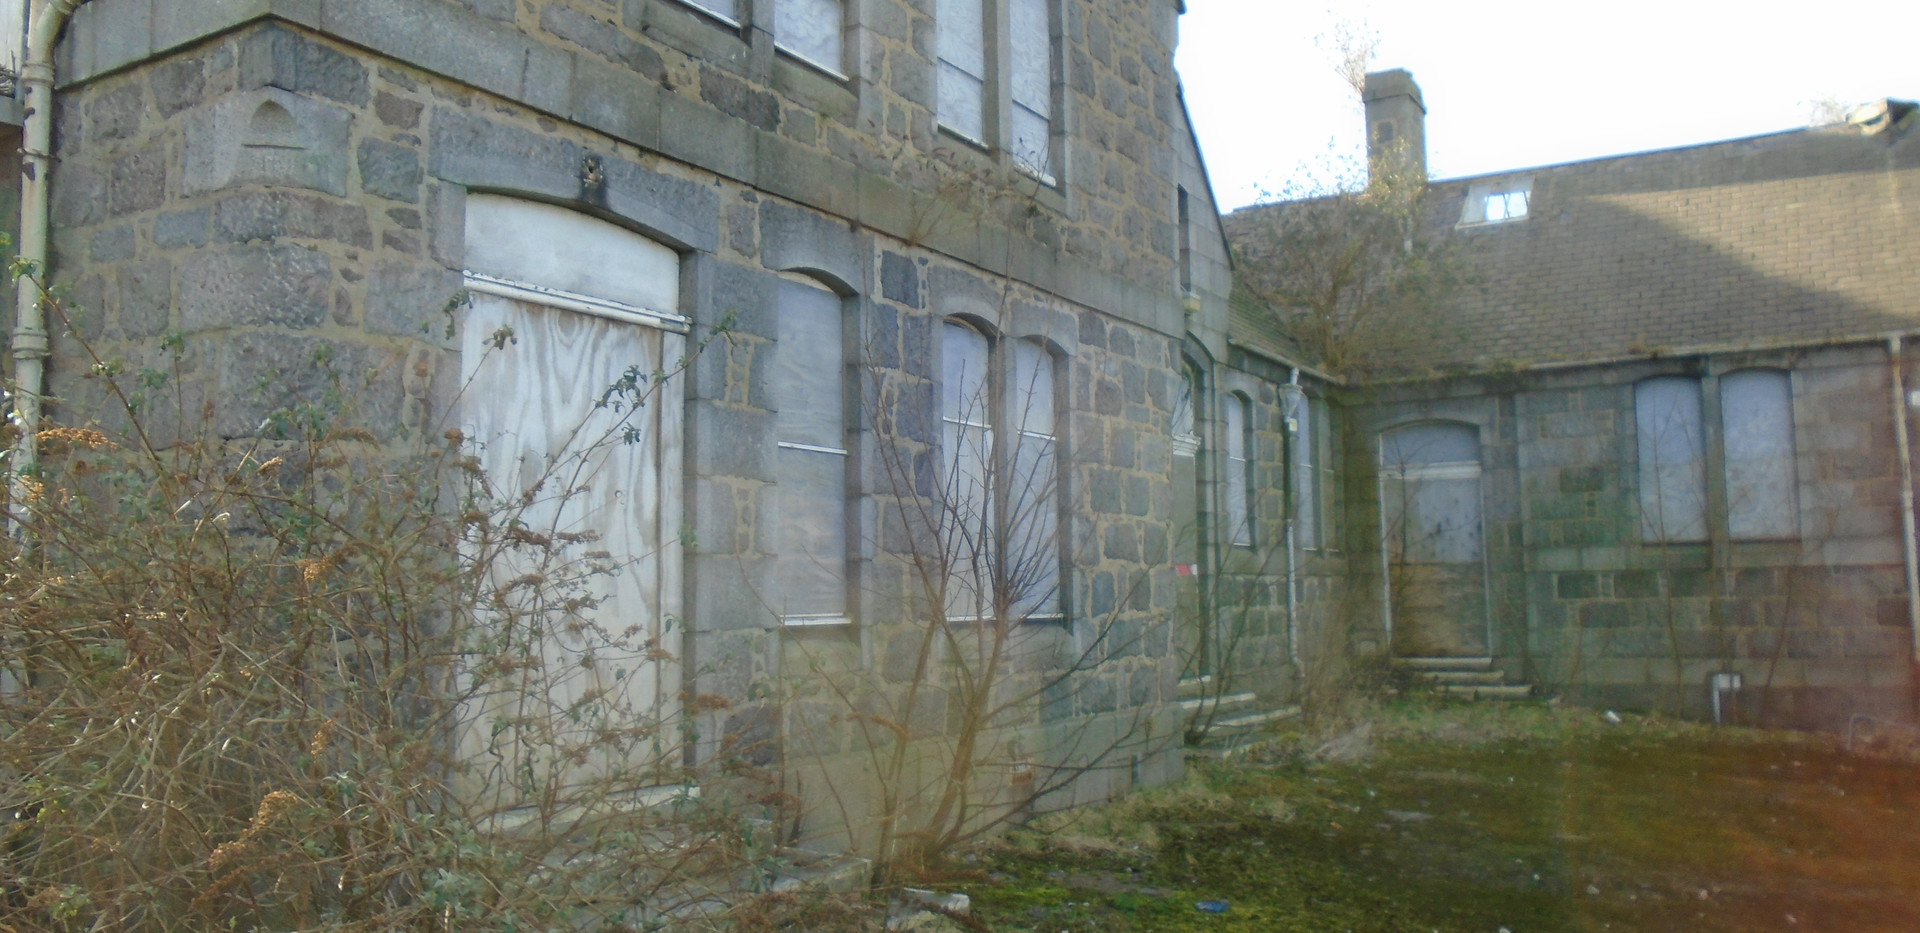 Outside view of the buildings Victoria Road School, Torry